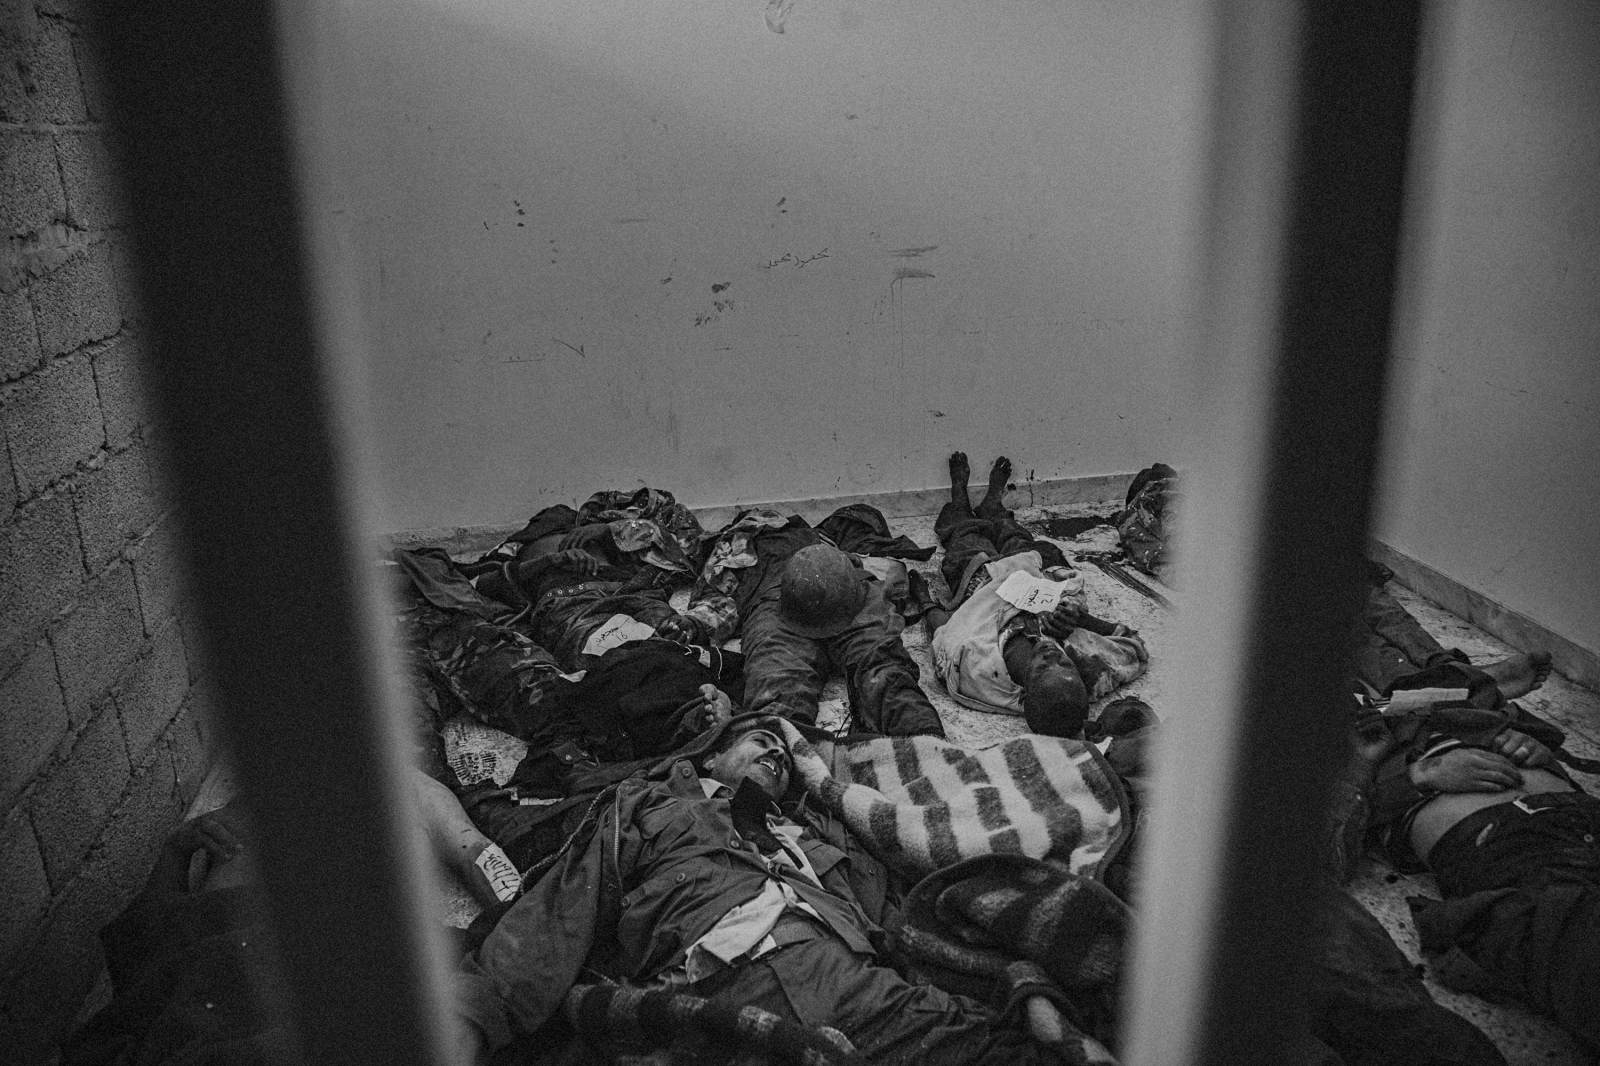 Bodies of Gaddafi's soldiers lay in a makeshift cell near a hospital in Benghazi, Libya, on March 20, 2011, a day after Western powers including the UK and France began airstrikes on Gaddafi's forces, which threatened to crush the revolution in the east with their speedy march towards Benghazi.